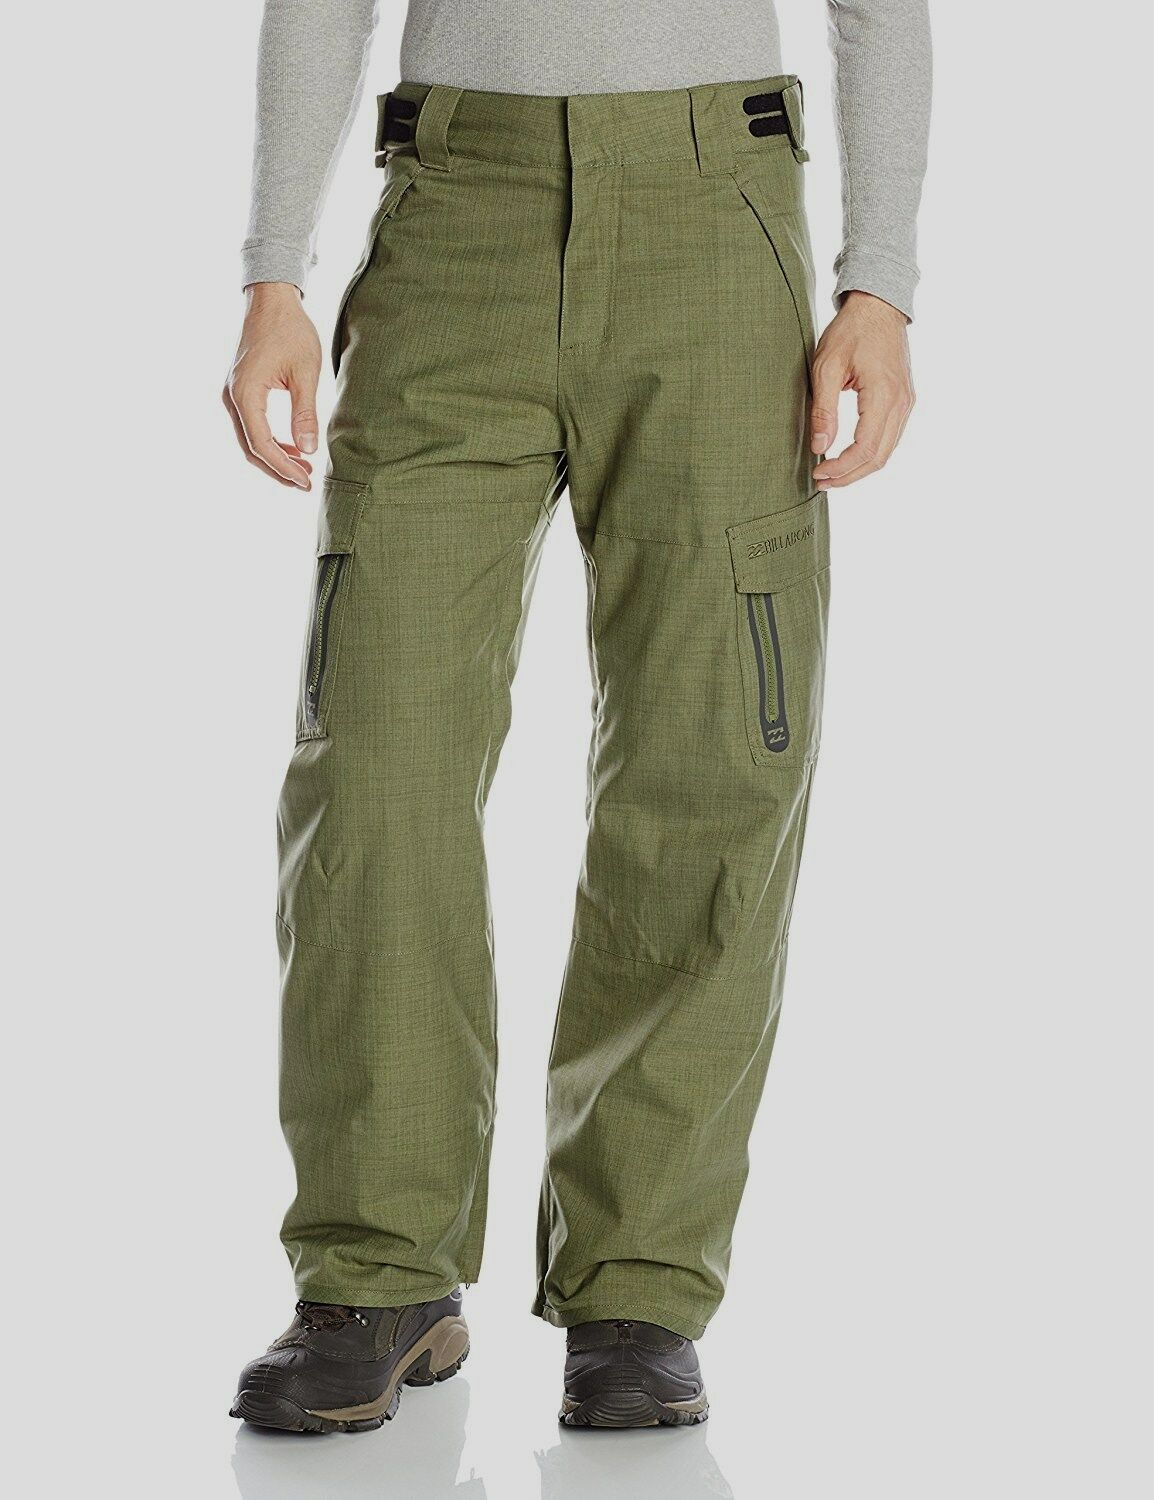 BILLABONG Men's CAB Snow Pants - Surplus - Medium -  NWT  cheapest price